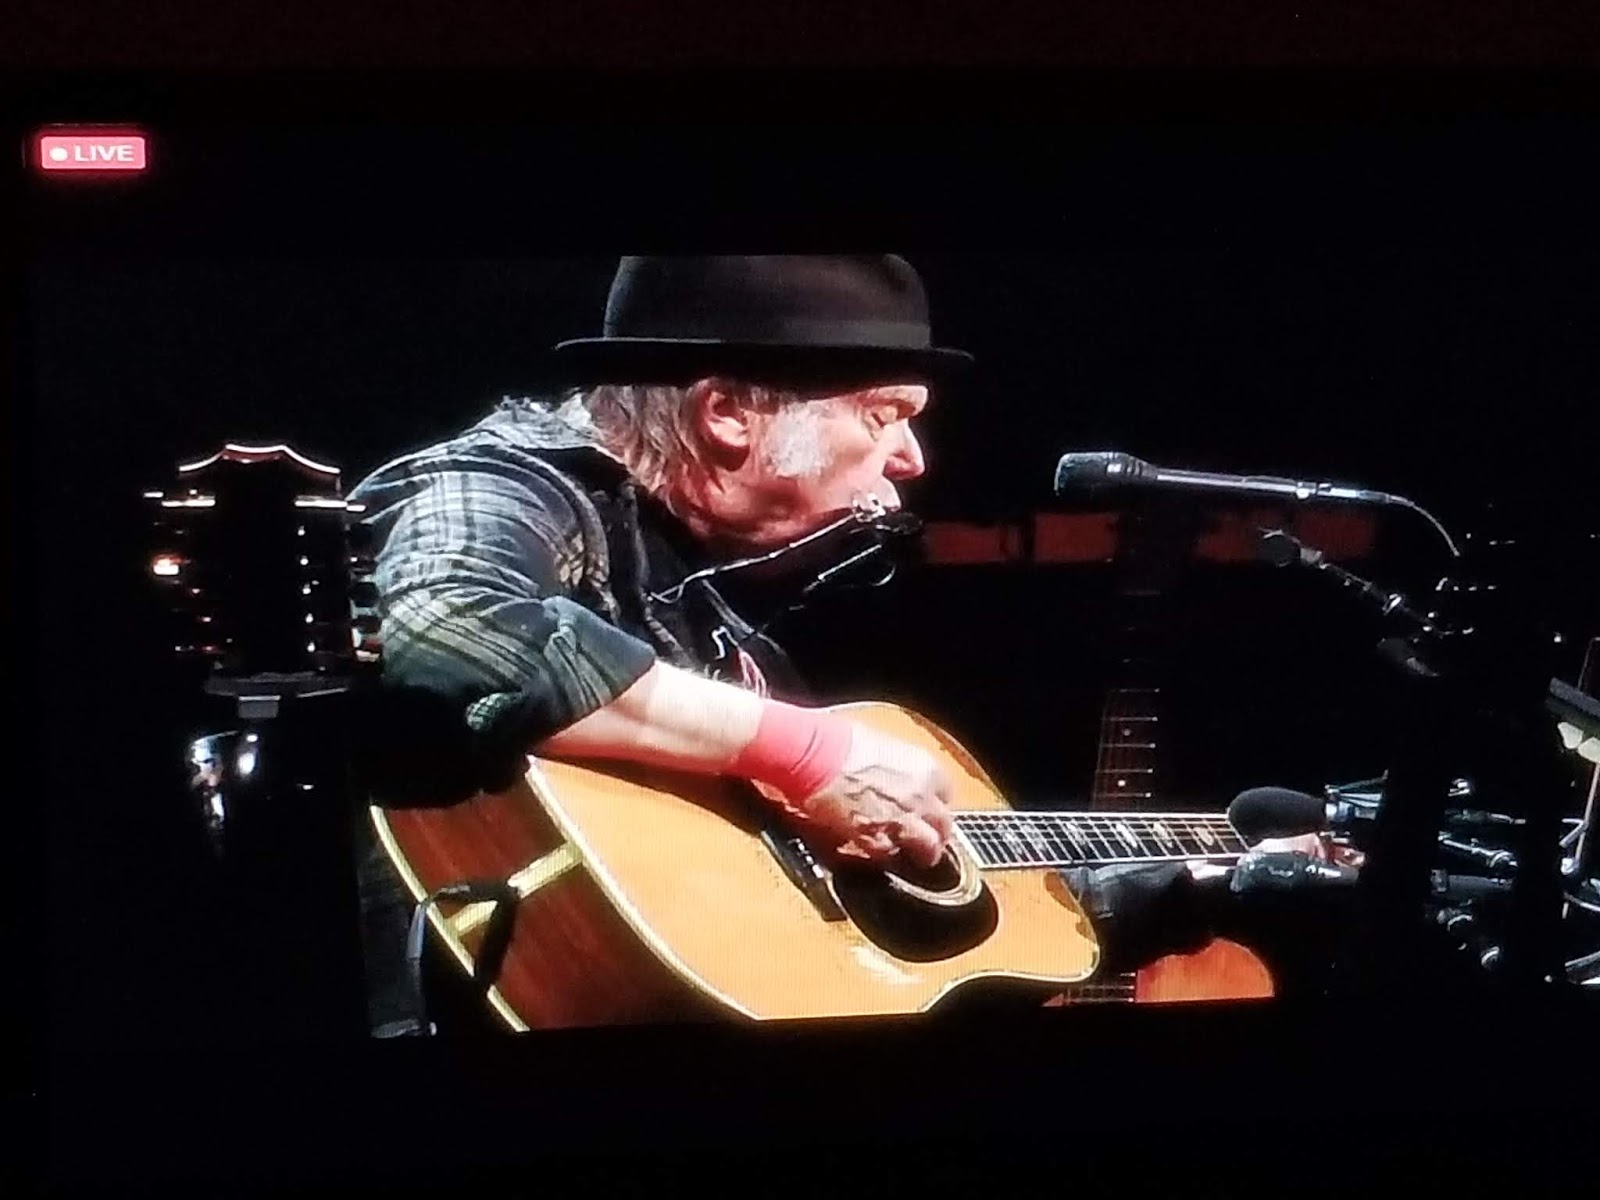 Neil Young News: LIVE STREAM